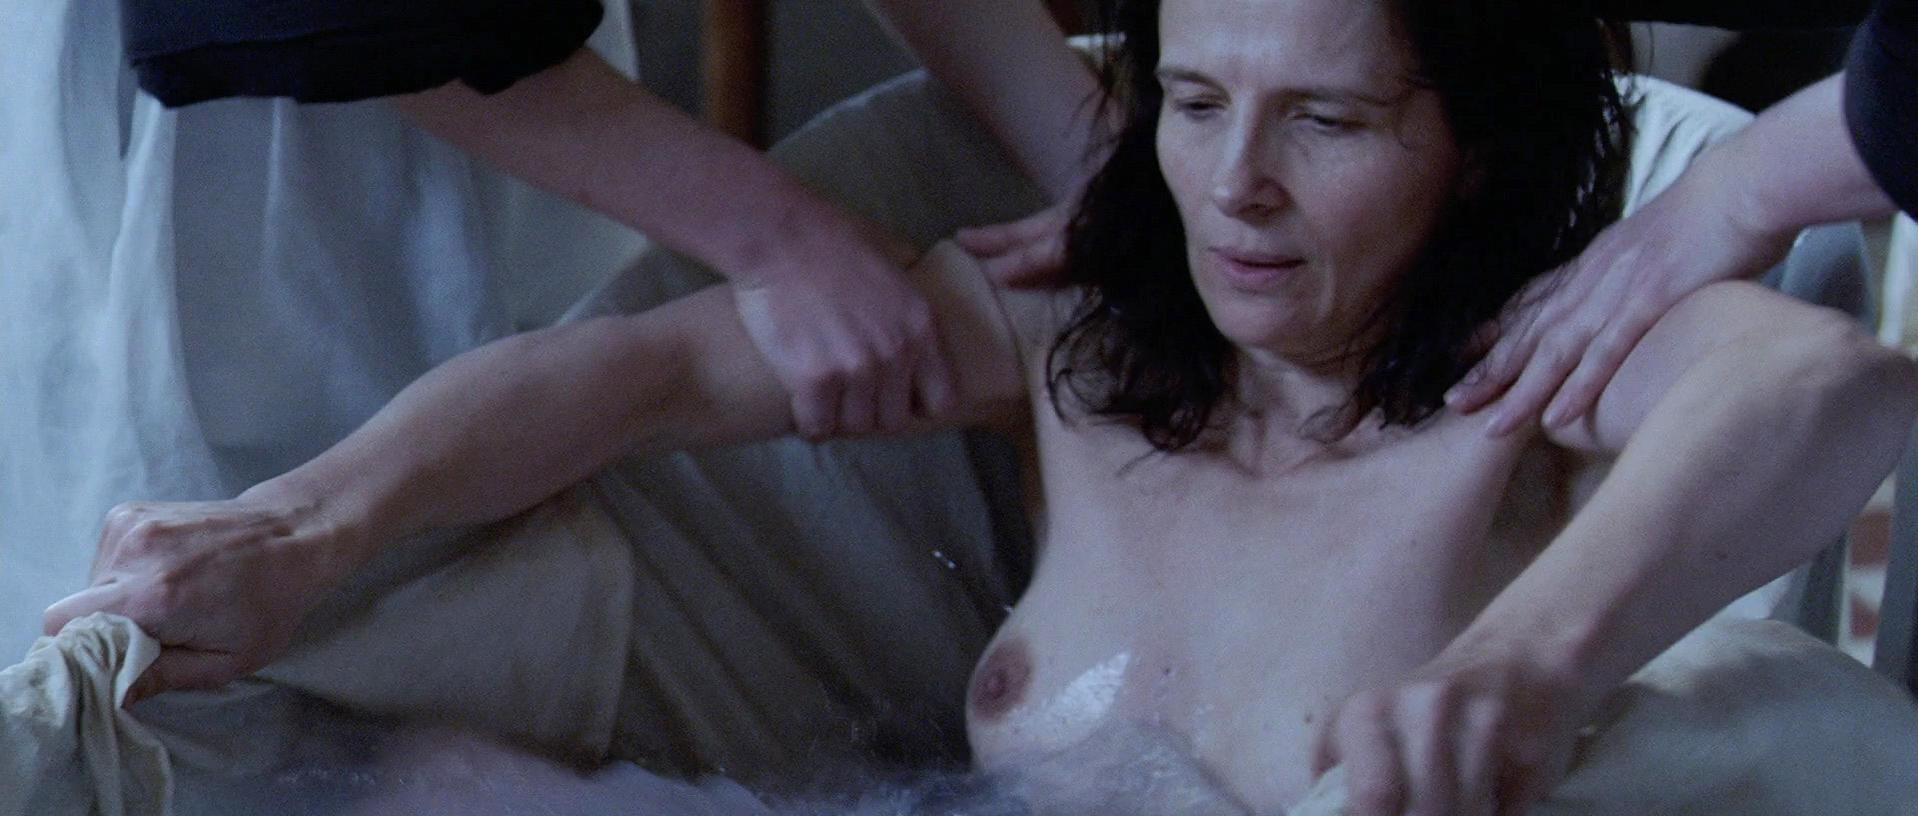 Juliette binoche nude naked agree, this